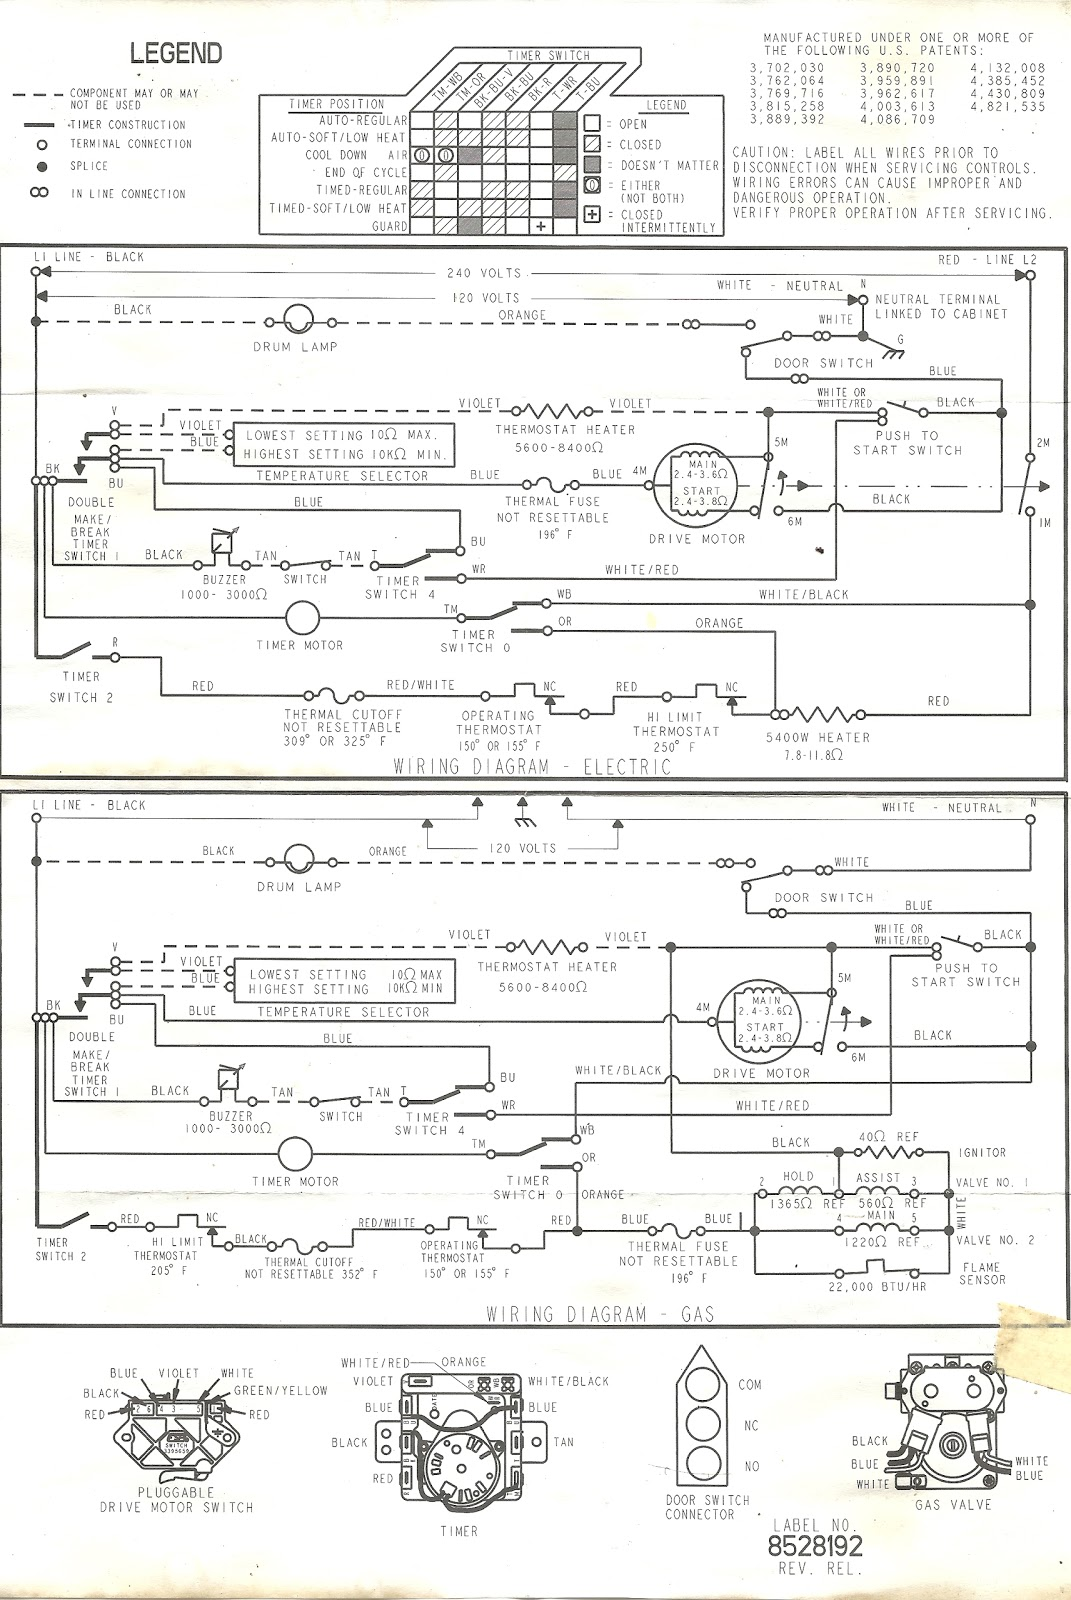 kenmore elite dryer wiring schematic appliance talk: wiring diagram for a kenmore dryer - full ... kenmore dryer wiring schematic diagrams